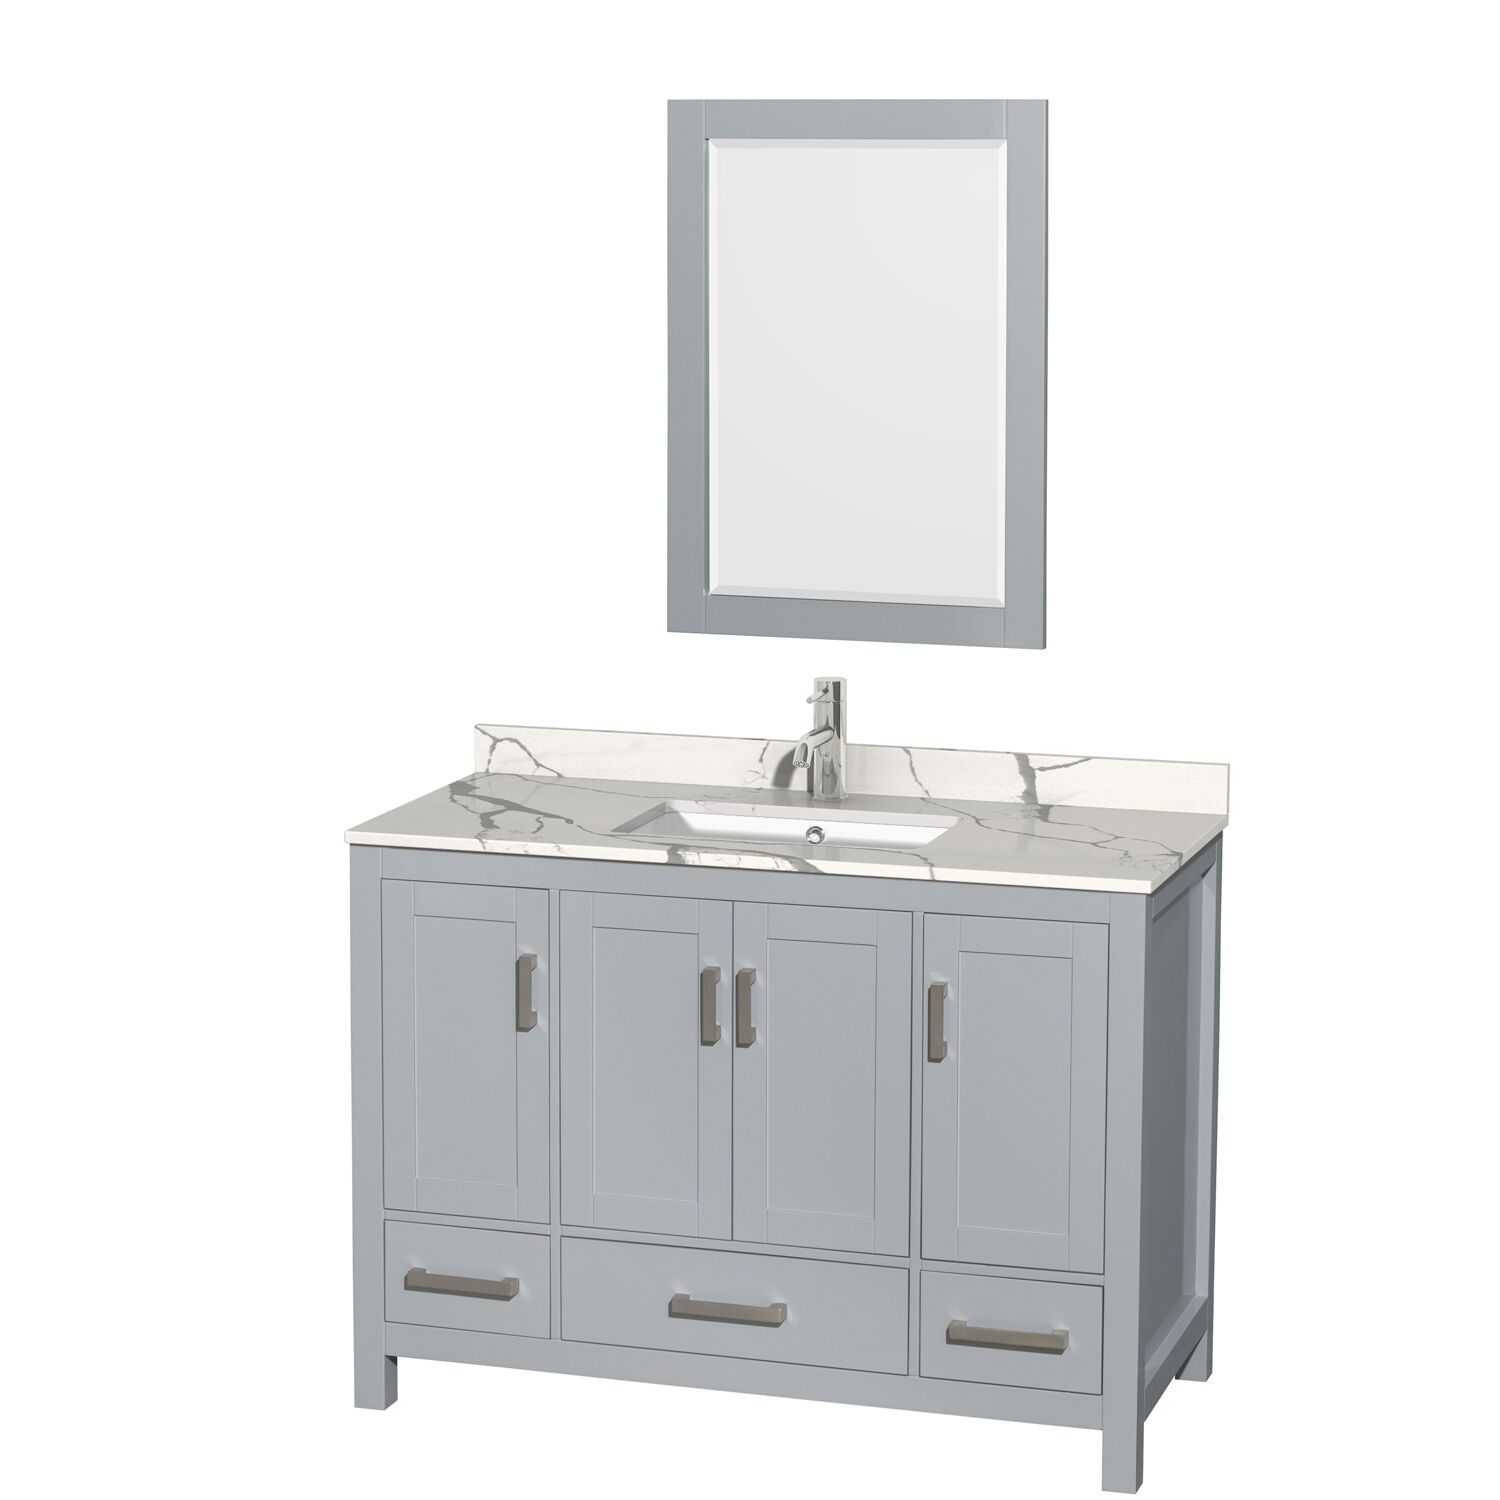 "48"" Single Bathroom Vanity with Color, Countertop and Mirror Options"